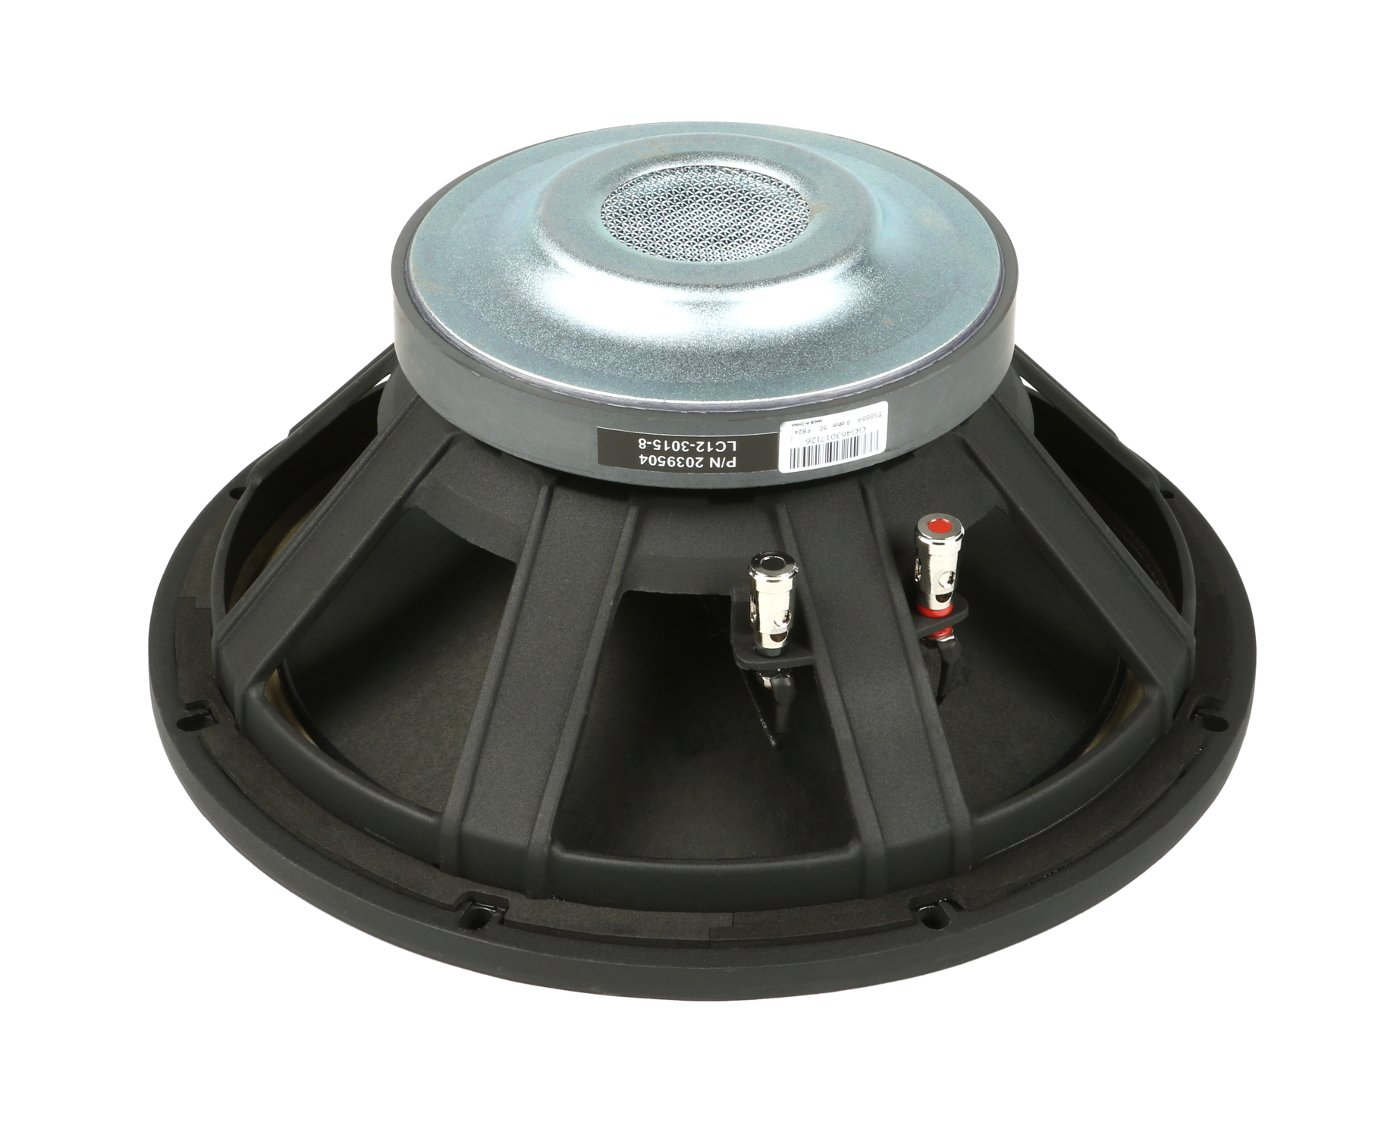 EAW-Eastern Acoustic Wrks 2039504 Replacement Woofer for MK2364 2039504